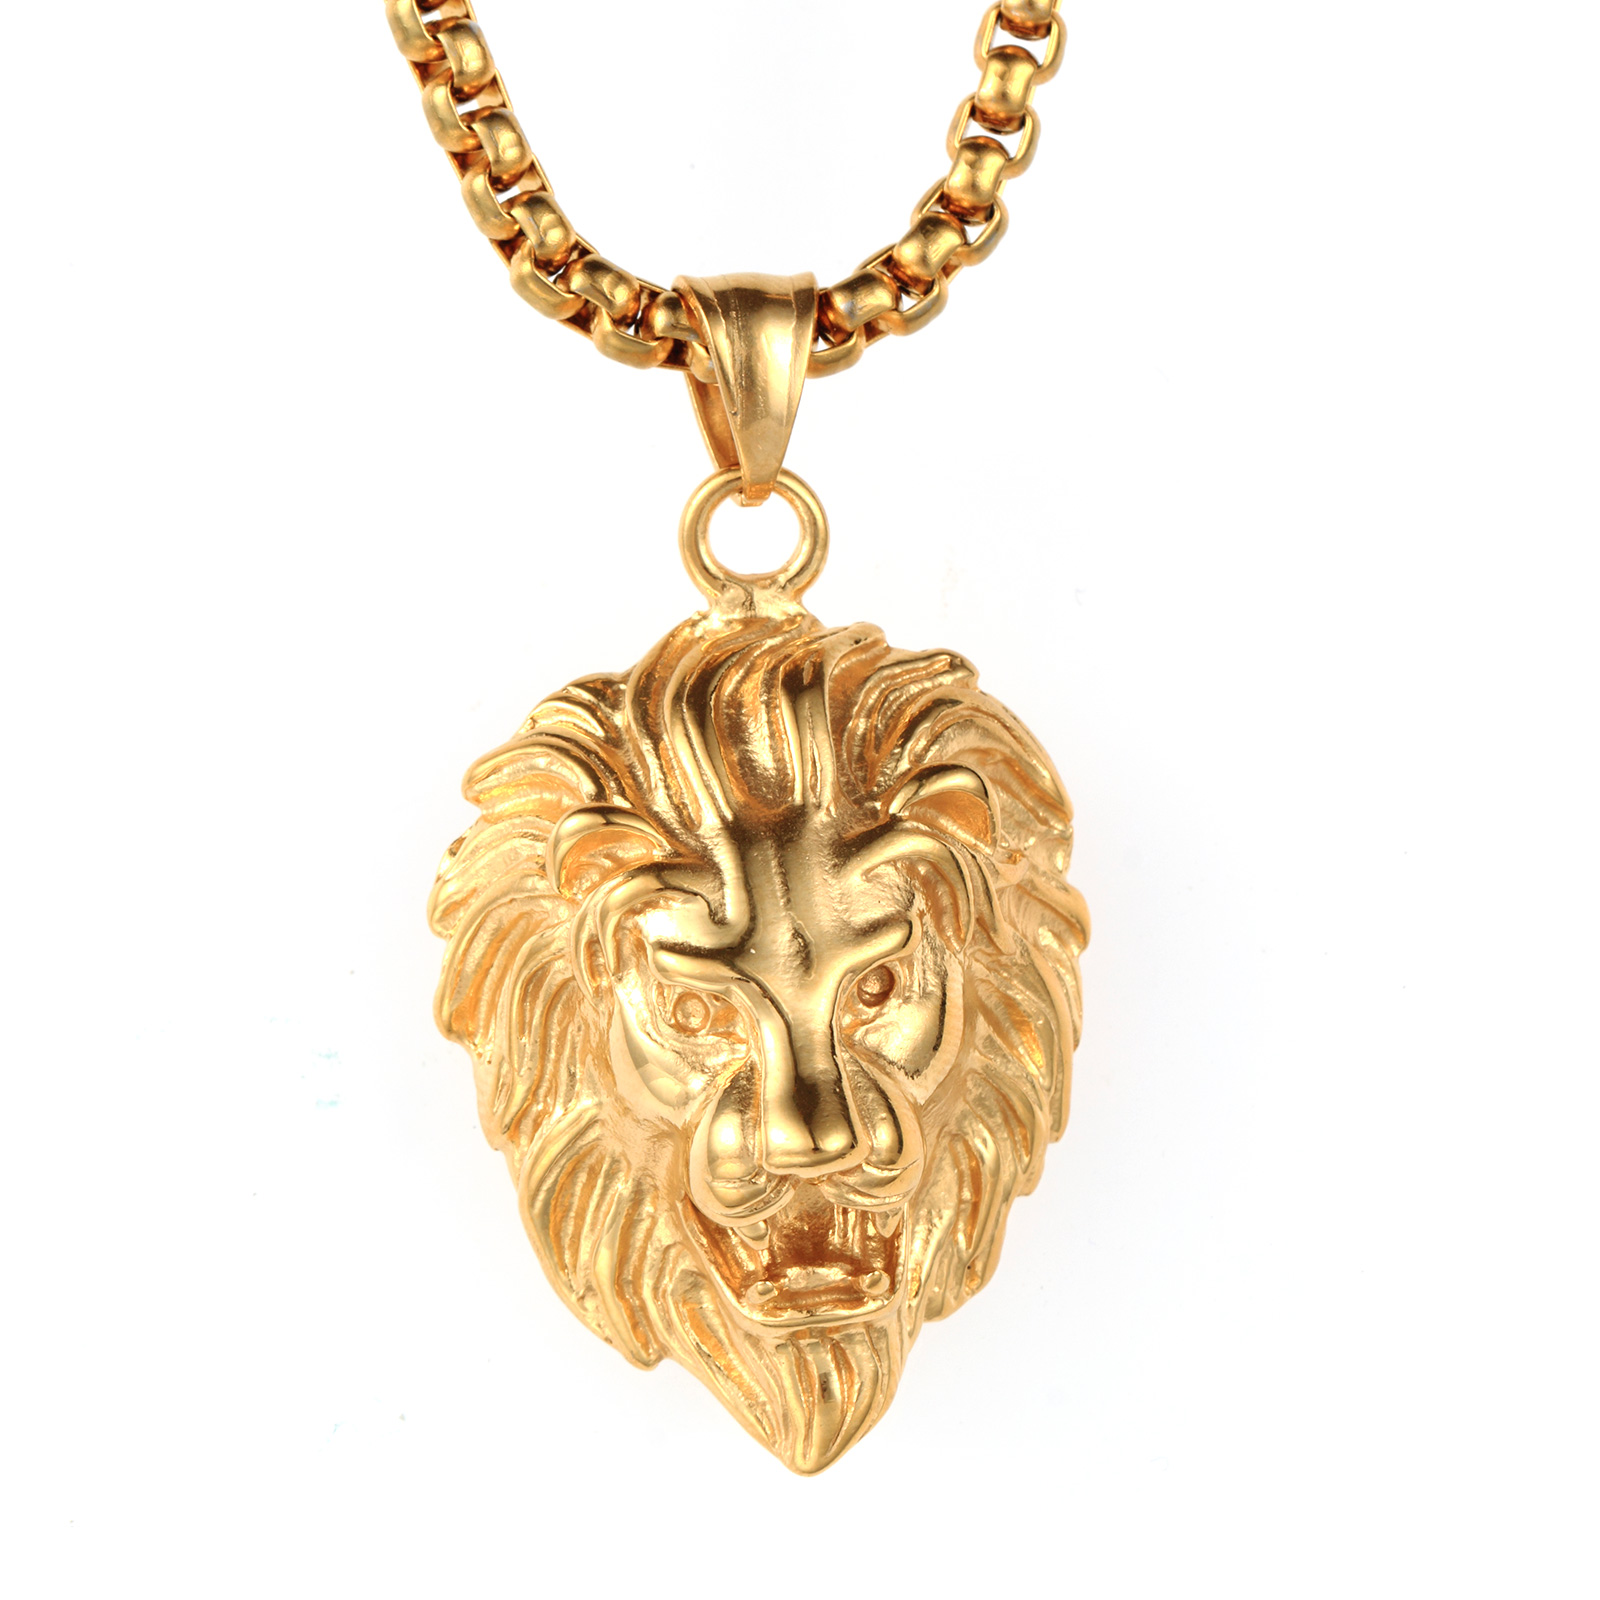 steel matching head tone picture necklace of s p chain w gold pendant mens lion stainless